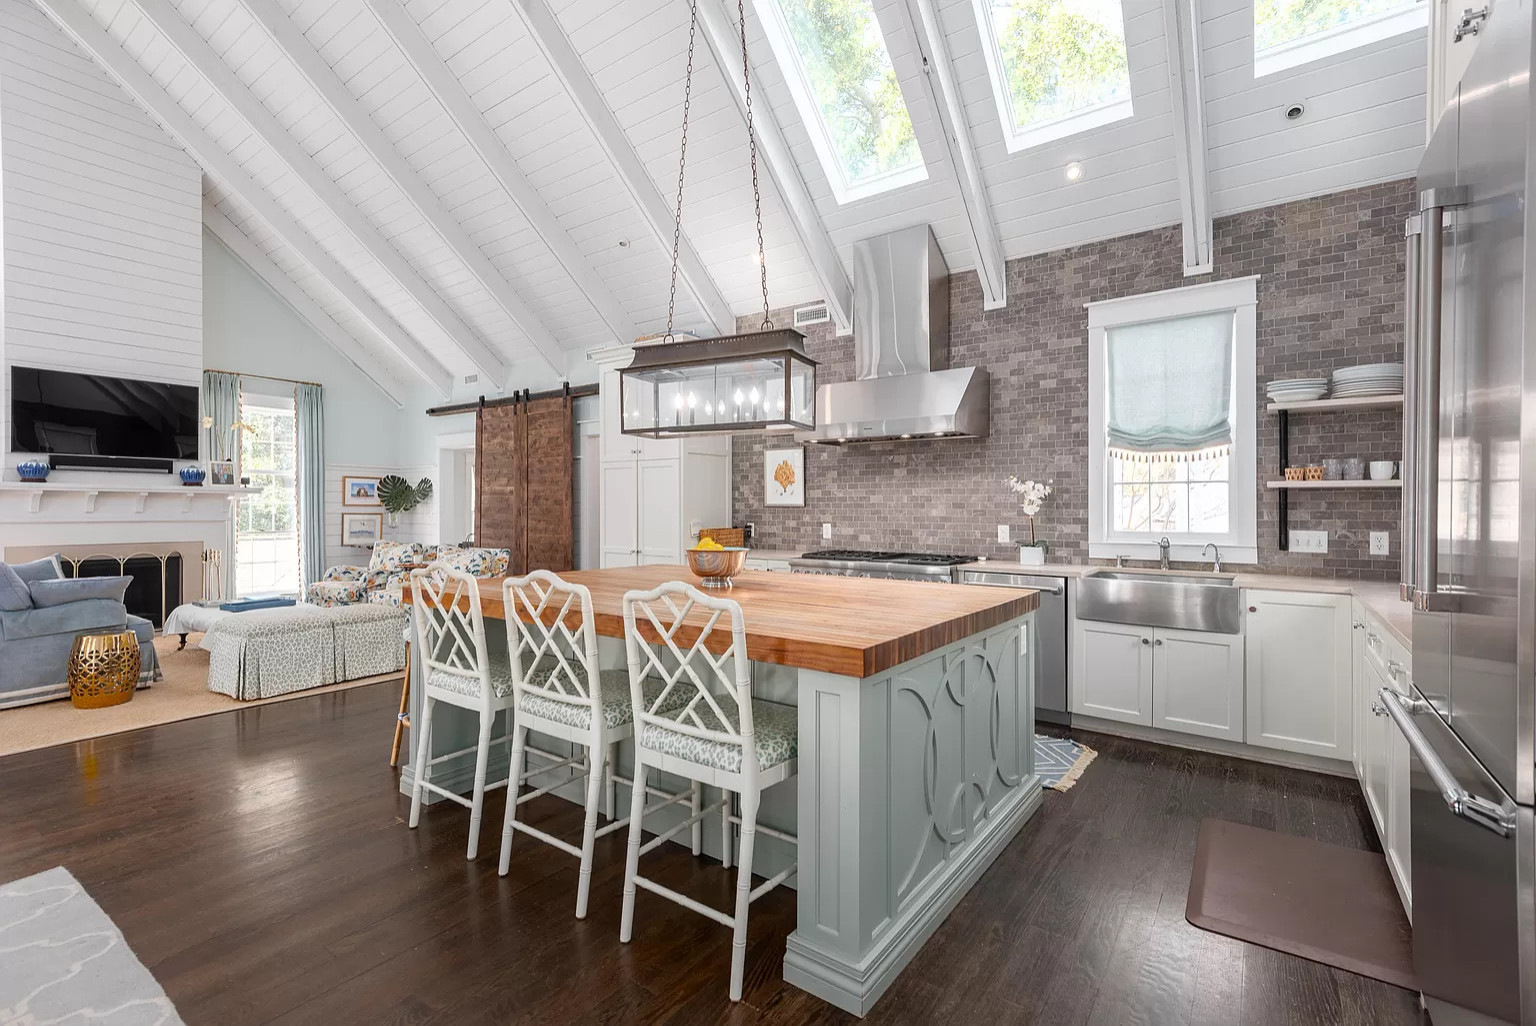 28 Beautiful Vaulted Ceiling Kitchen Pictures & Ideas - September